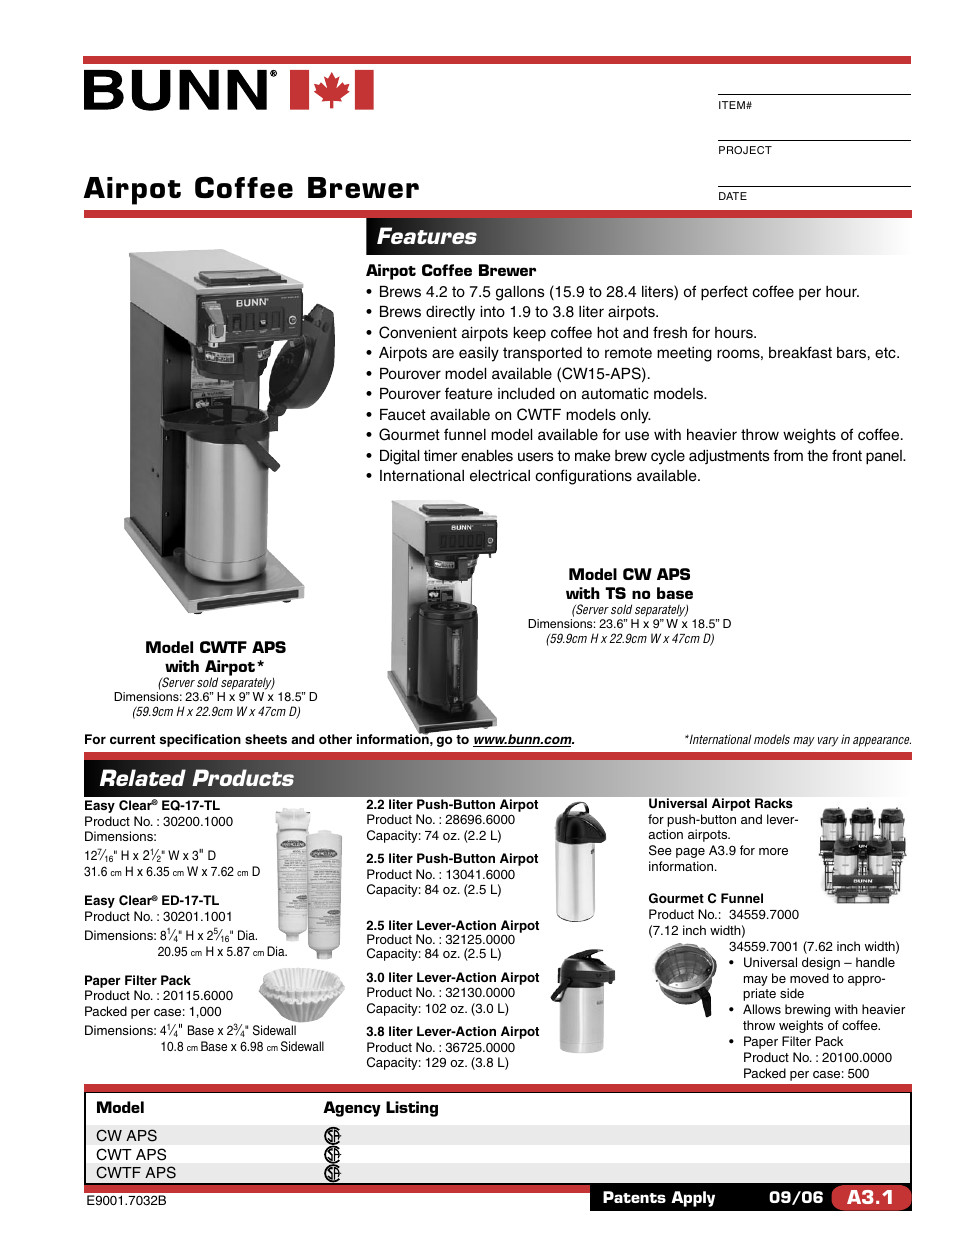 Bunn cw15 aps commercial airpot coffee brewer seattle.